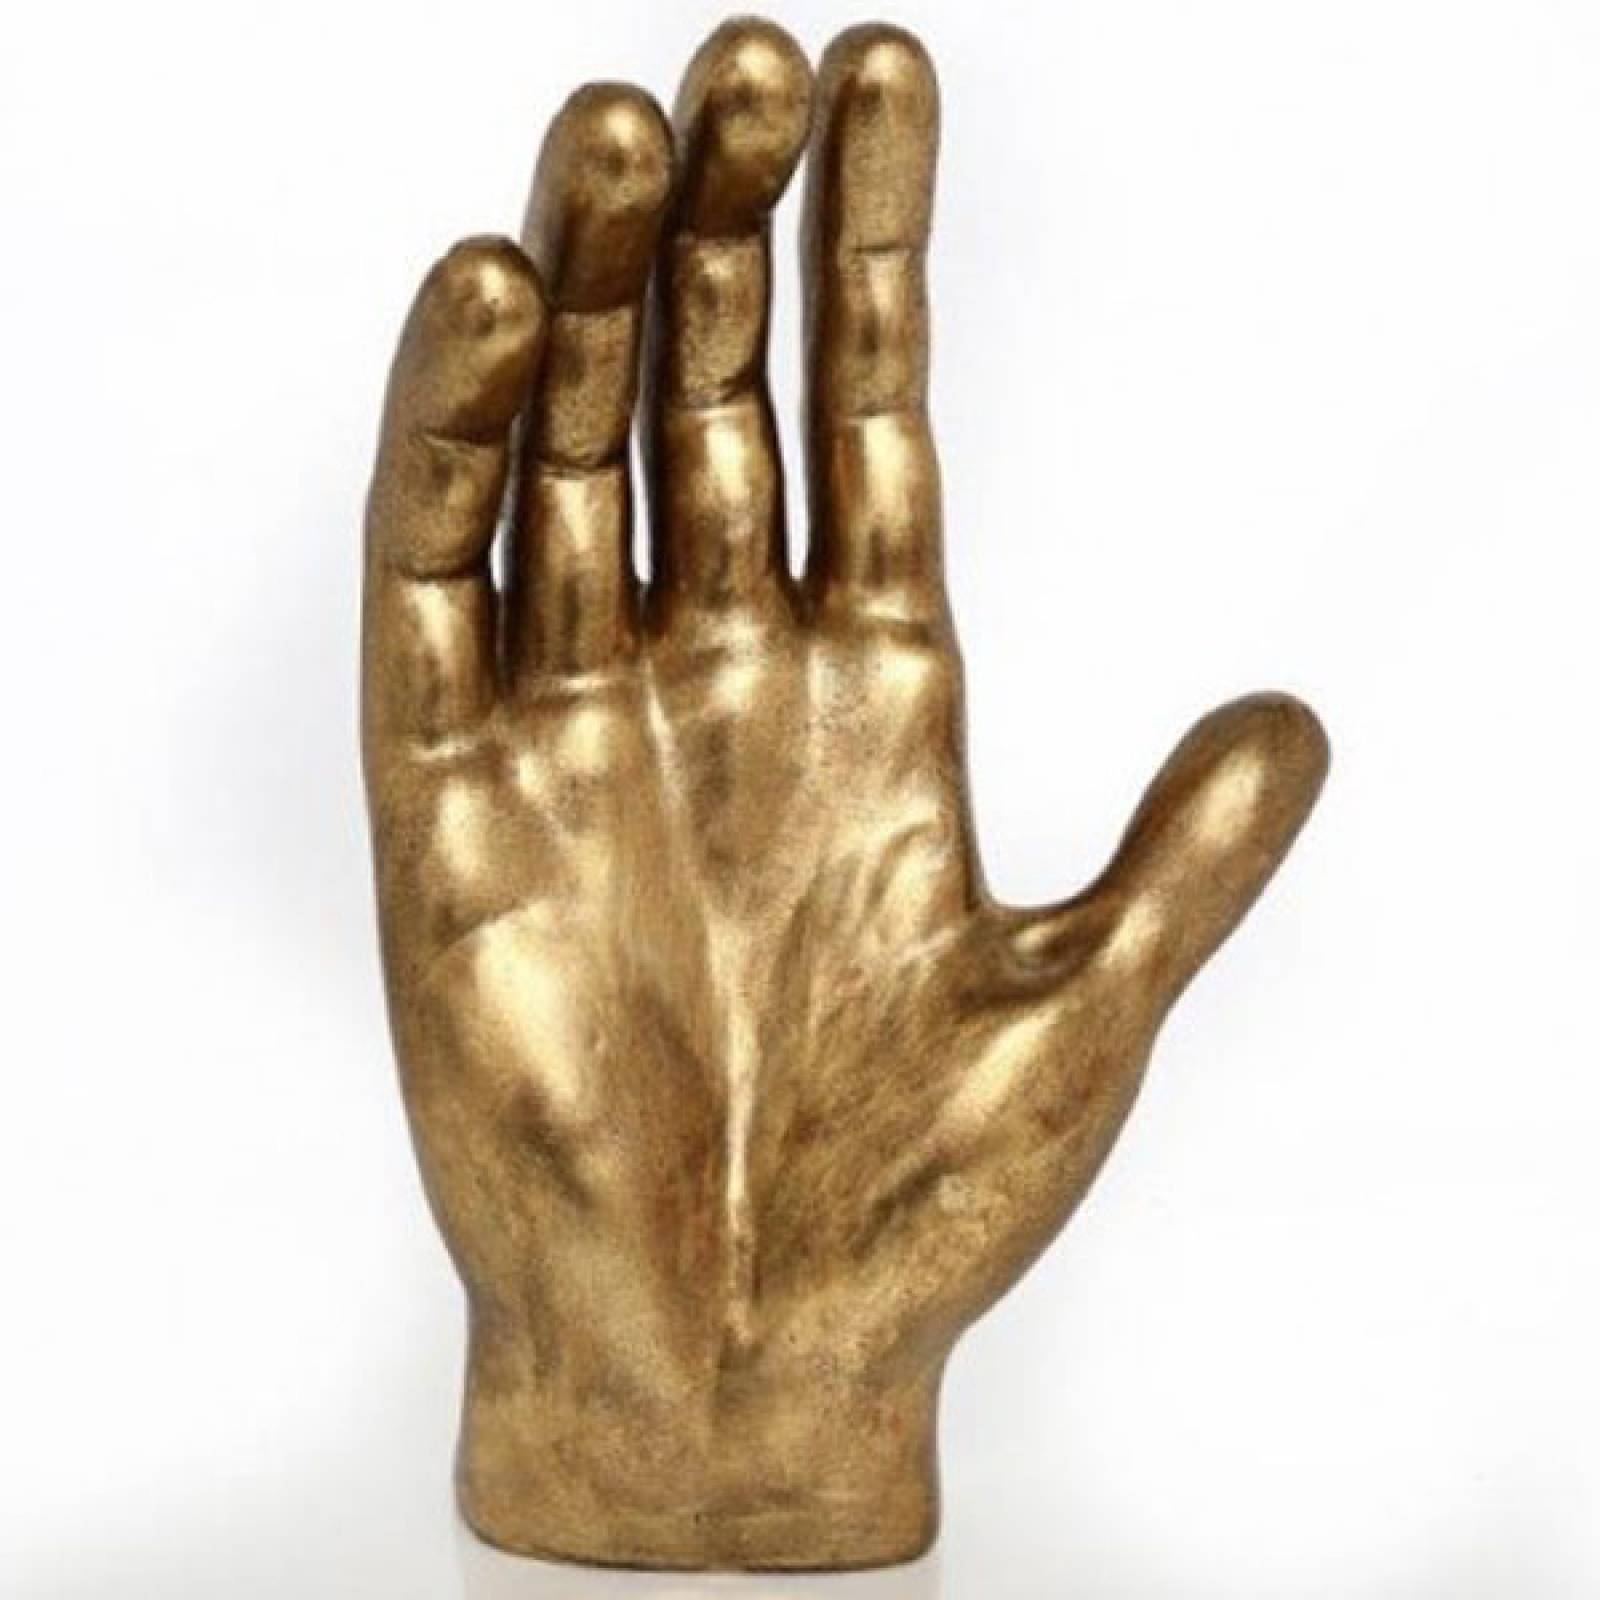 Giant Gold Hand thumbnails